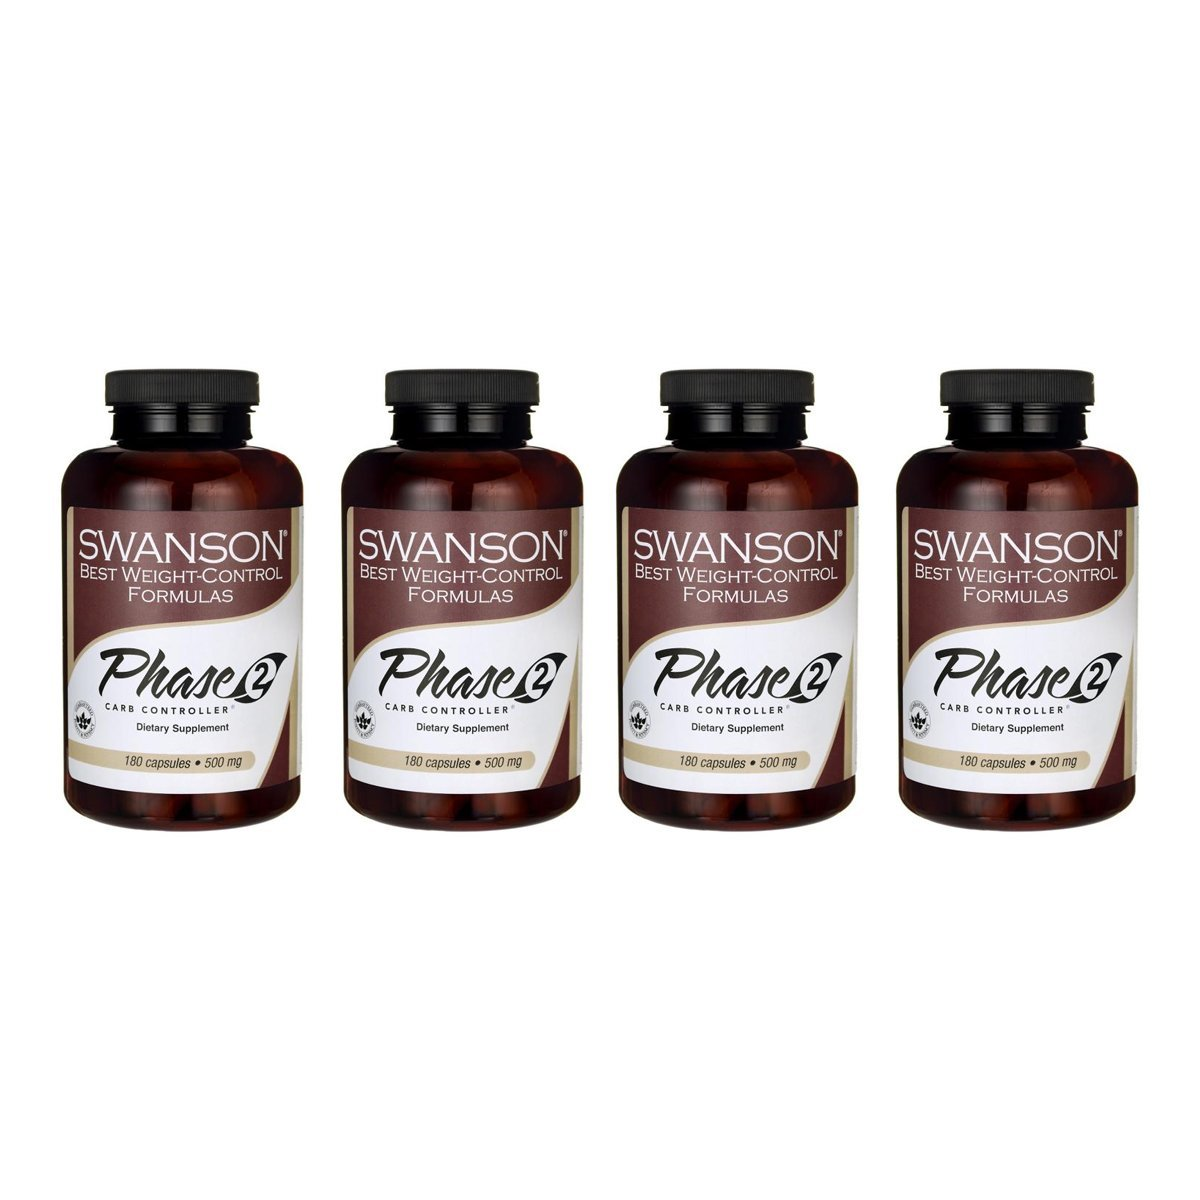 Swanson White Kidney Bean Extract 500 mg 180 Caps 4 Pack by Swanson (Image #1)